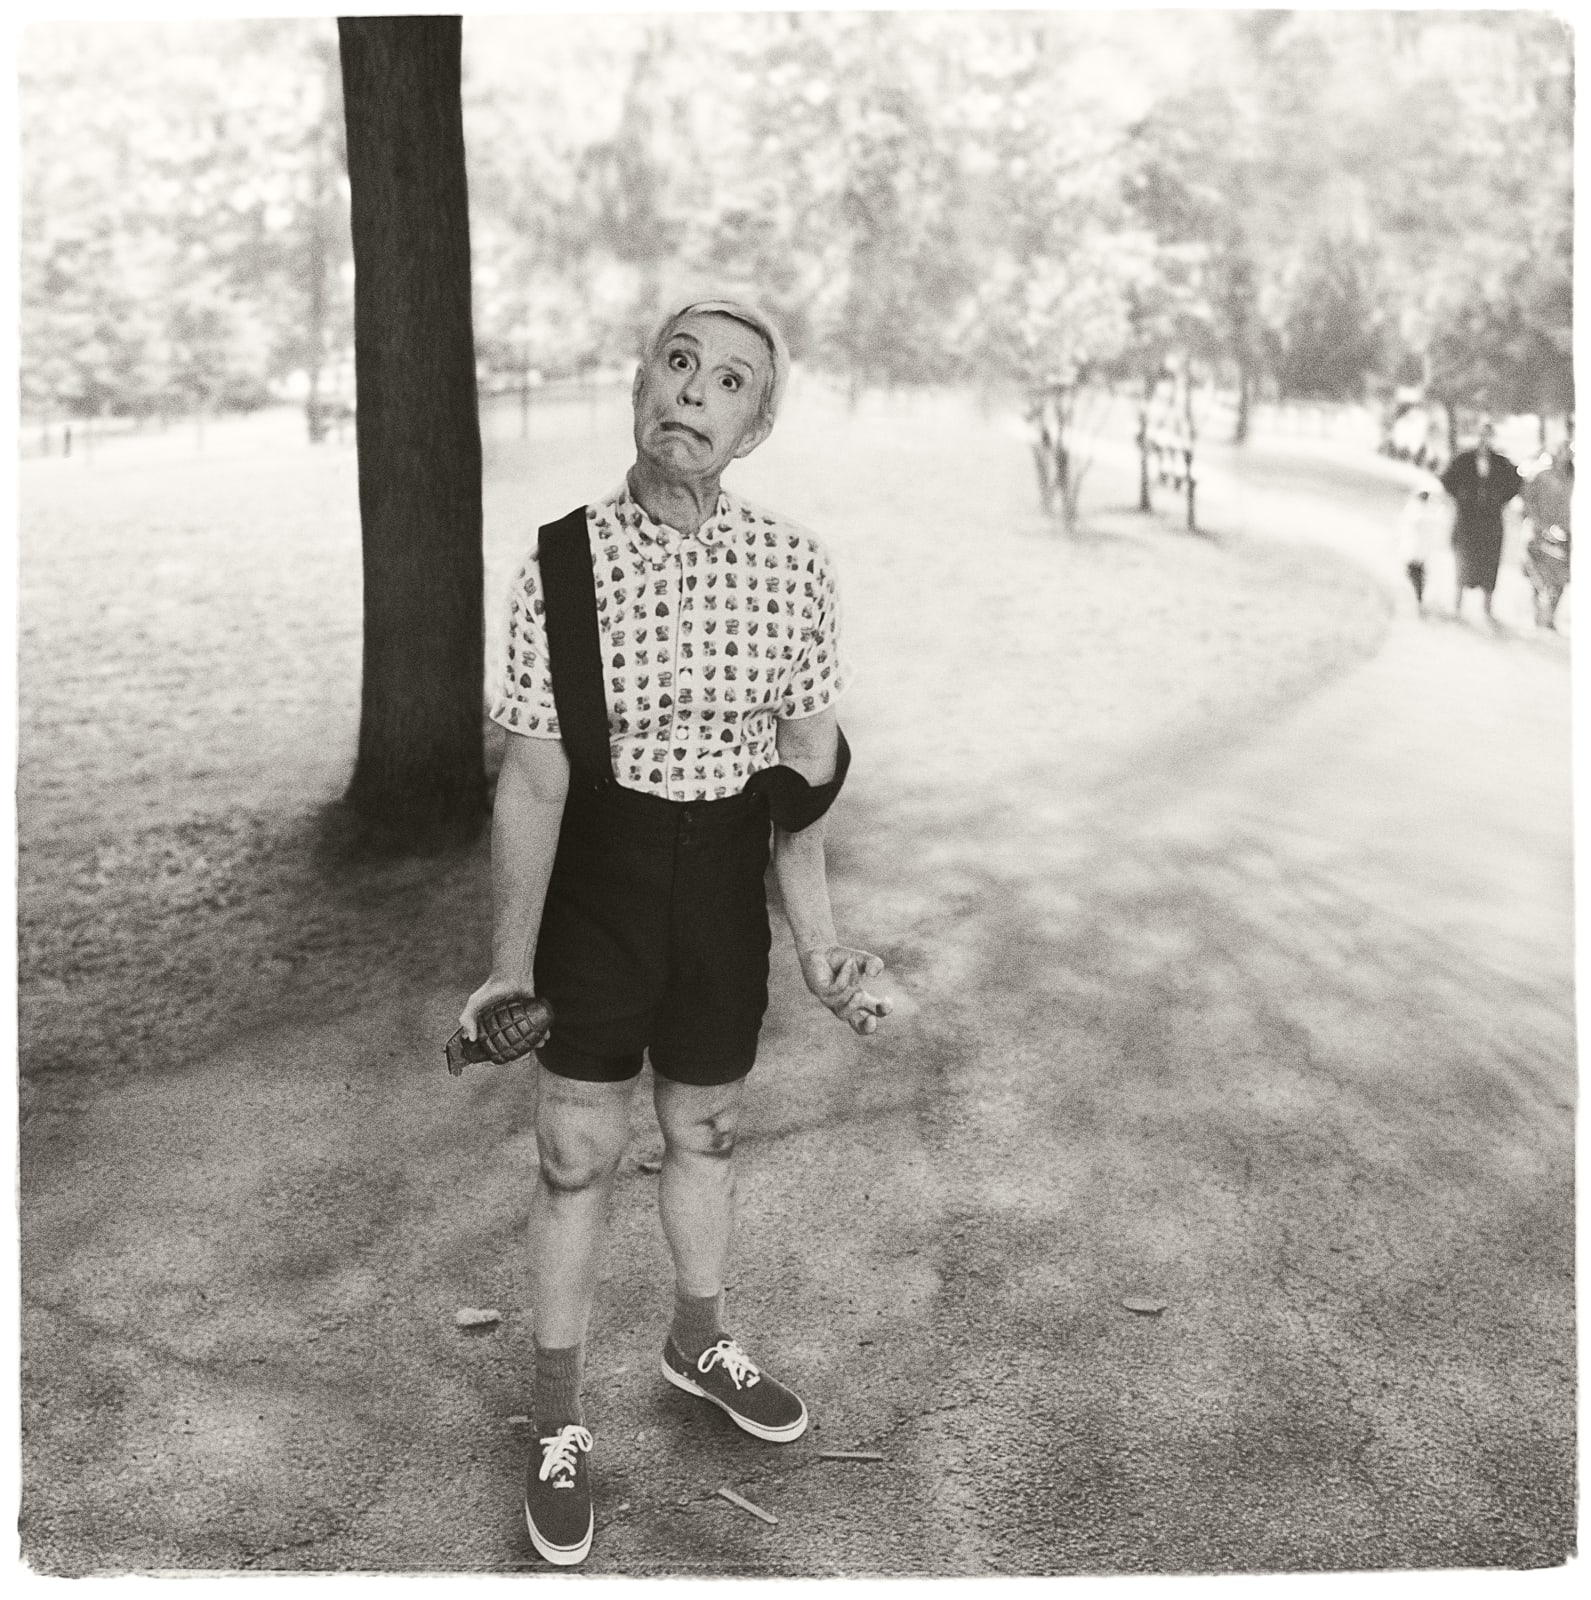 Sandro Miller, Diane Arbus / Child with a Toy Hand Grenade in Central Park, N.Y.C. (1962), 2014